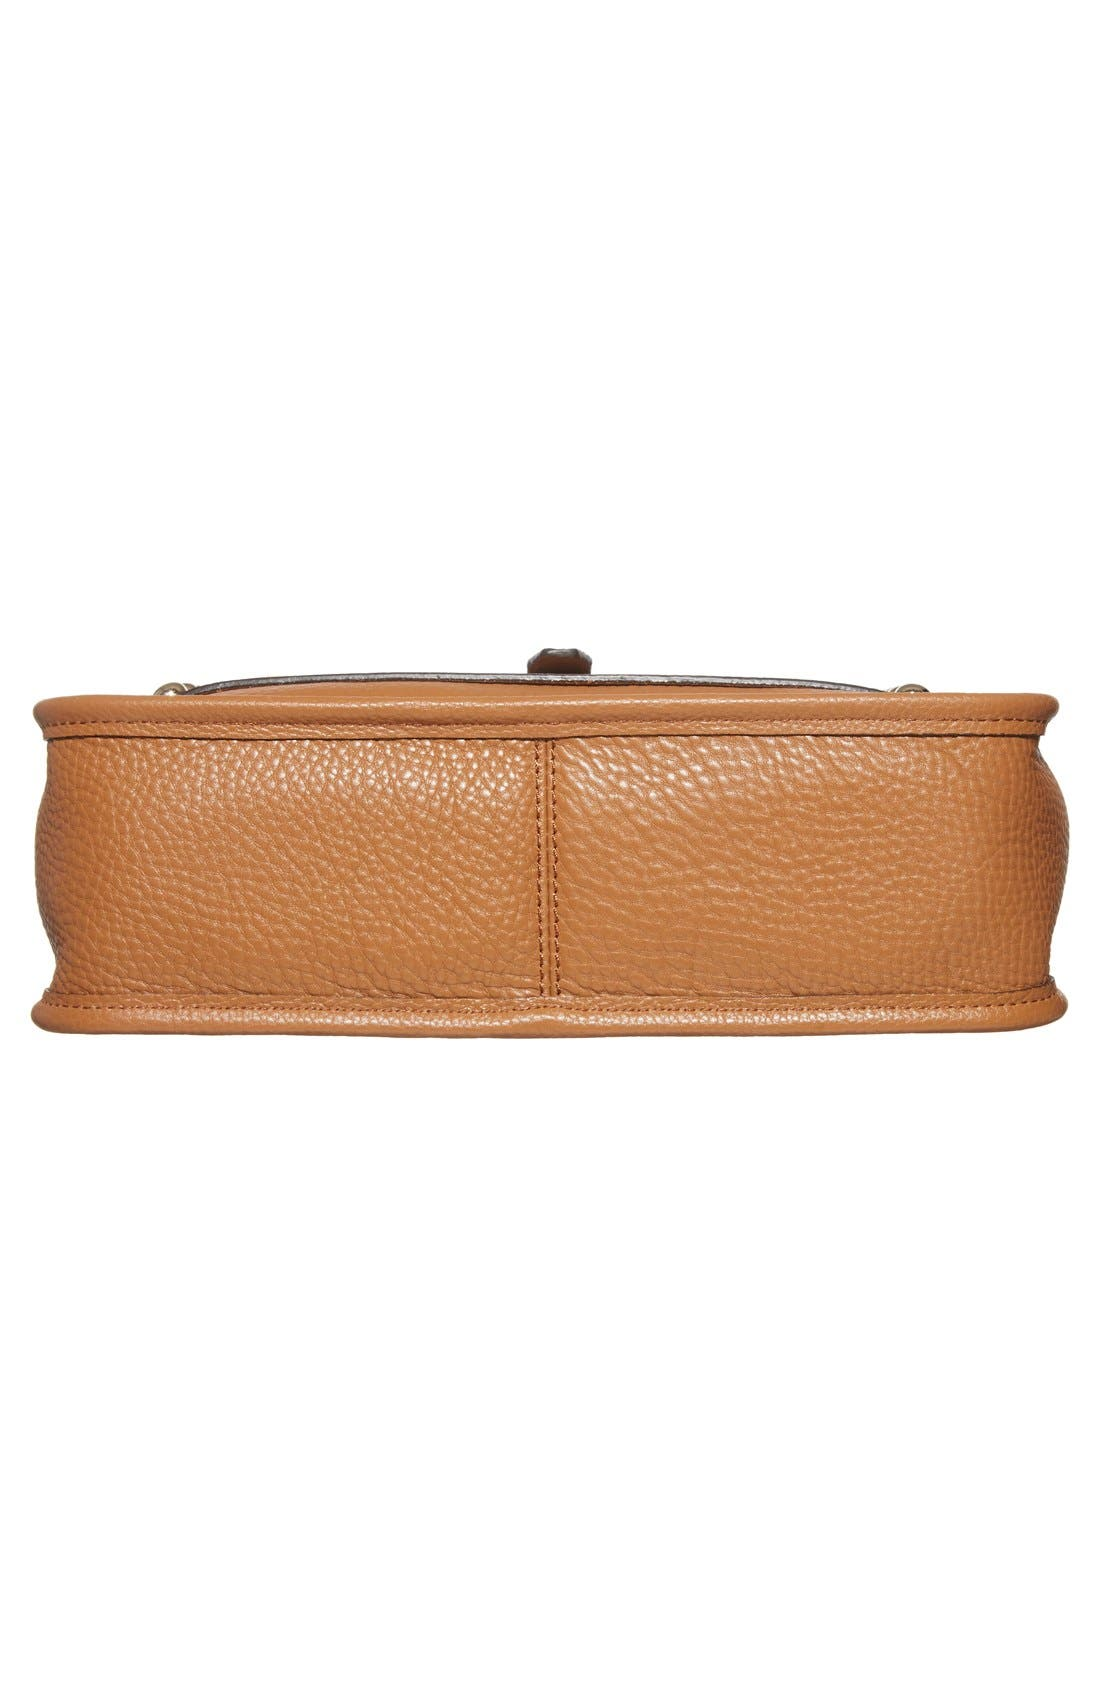 Unlined Feed Bag,                             Alternate thumbnail 6, color,                             Almond/ Light Gold Hrdwr